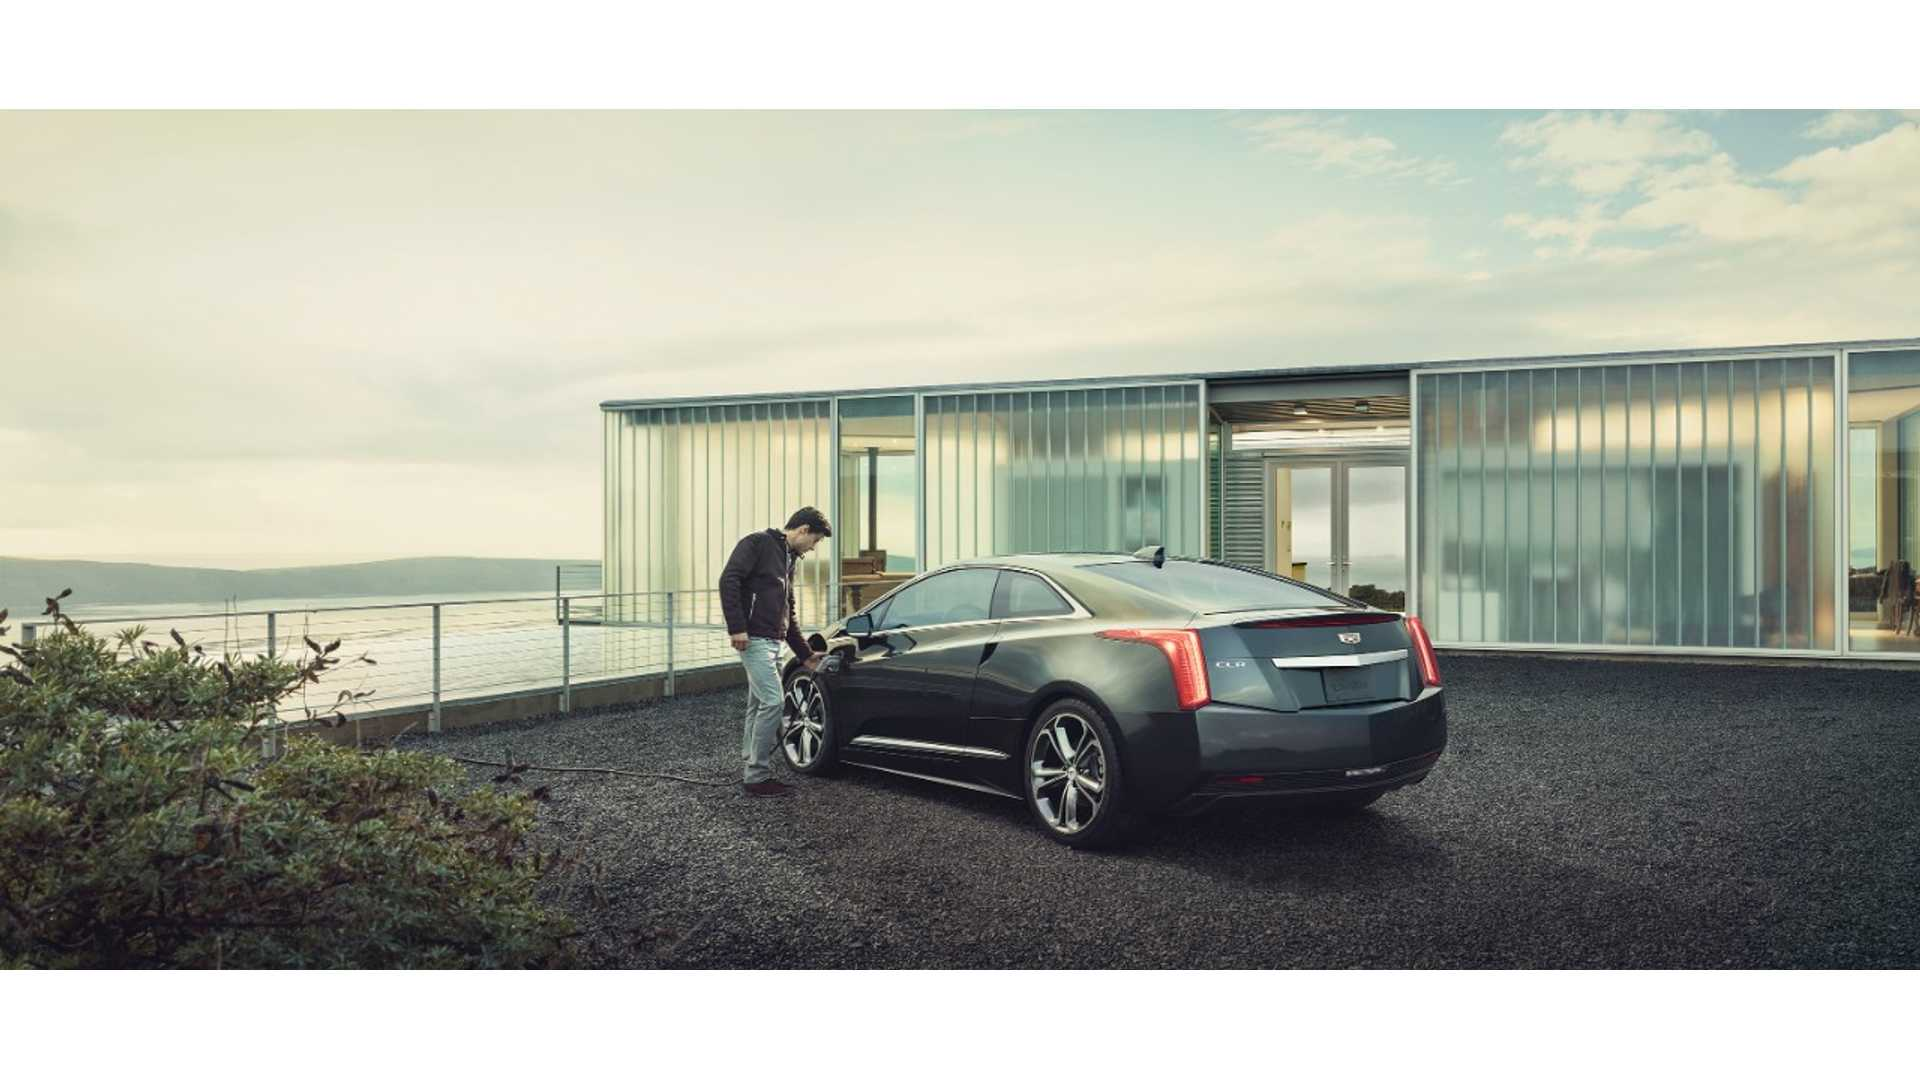 2016-cadillac-elr-sport-emerges-with-reduced-electric-range (2).jpg